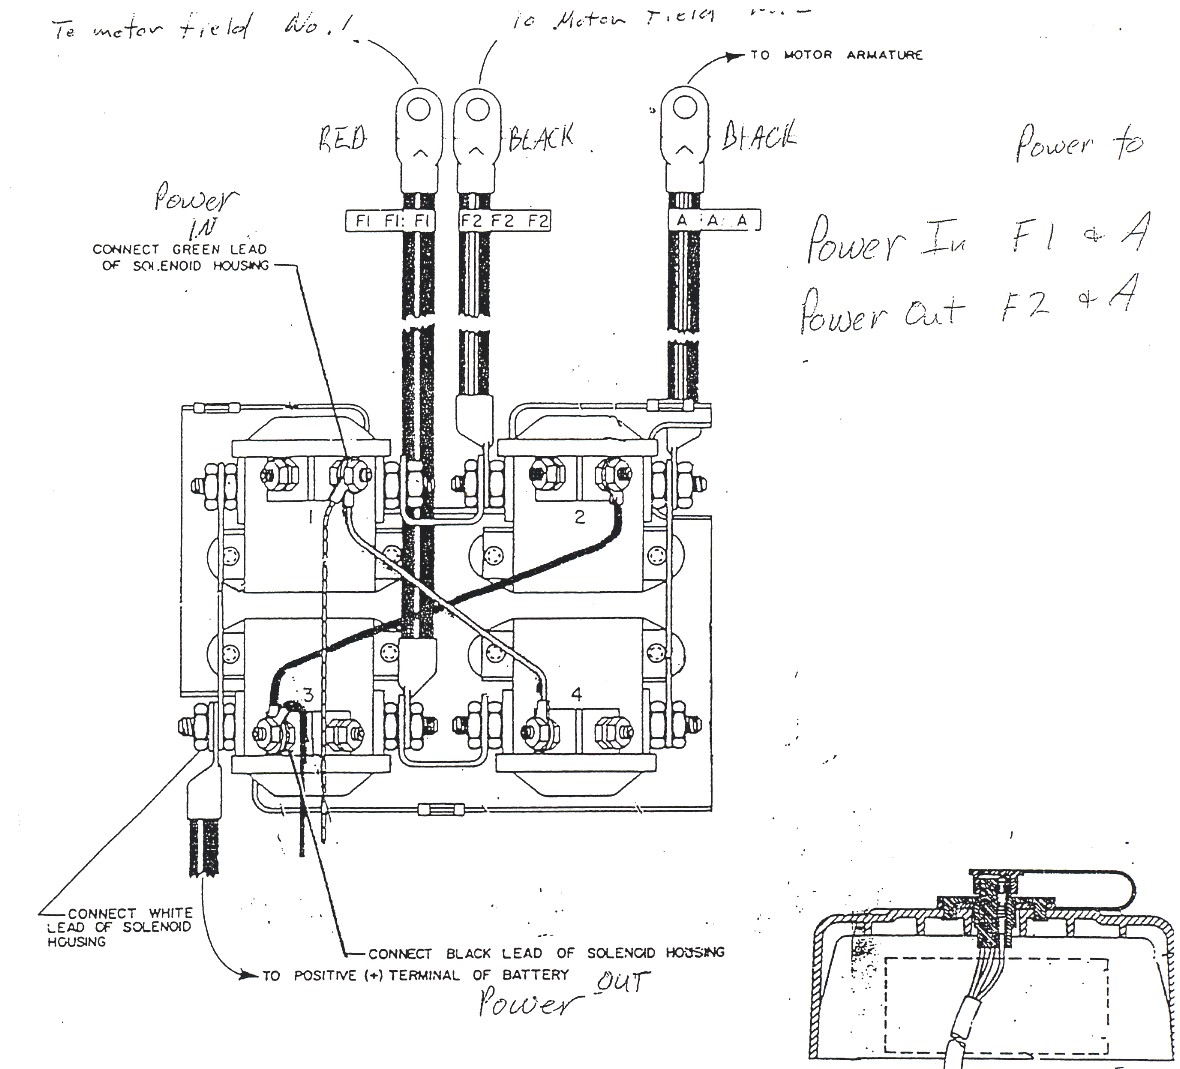 warn winch solenoid wiring diagram atv